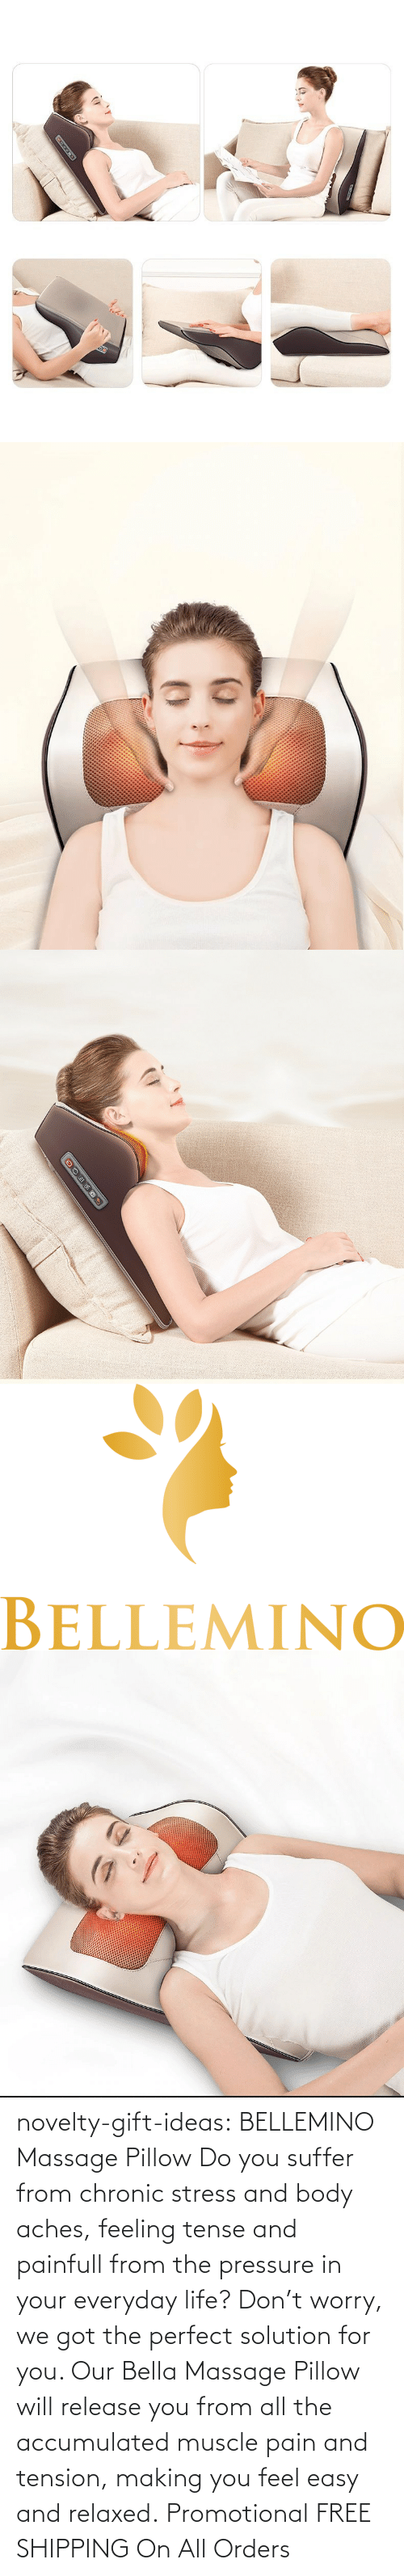 Massage: novelty-gift-ideas:   BELLEMINO Massage Pillow     Do you suffer from chronic stress and body aches, feeling tense and painfull from the pressure in your everyday life? Don't worry, we got the perfect solution for you. Our Bella Massage Pillow will release you from all the accumulated muscle pain and tension, making you feel easy and relaxed.     Promotional FREE SHIPPING On All Orders